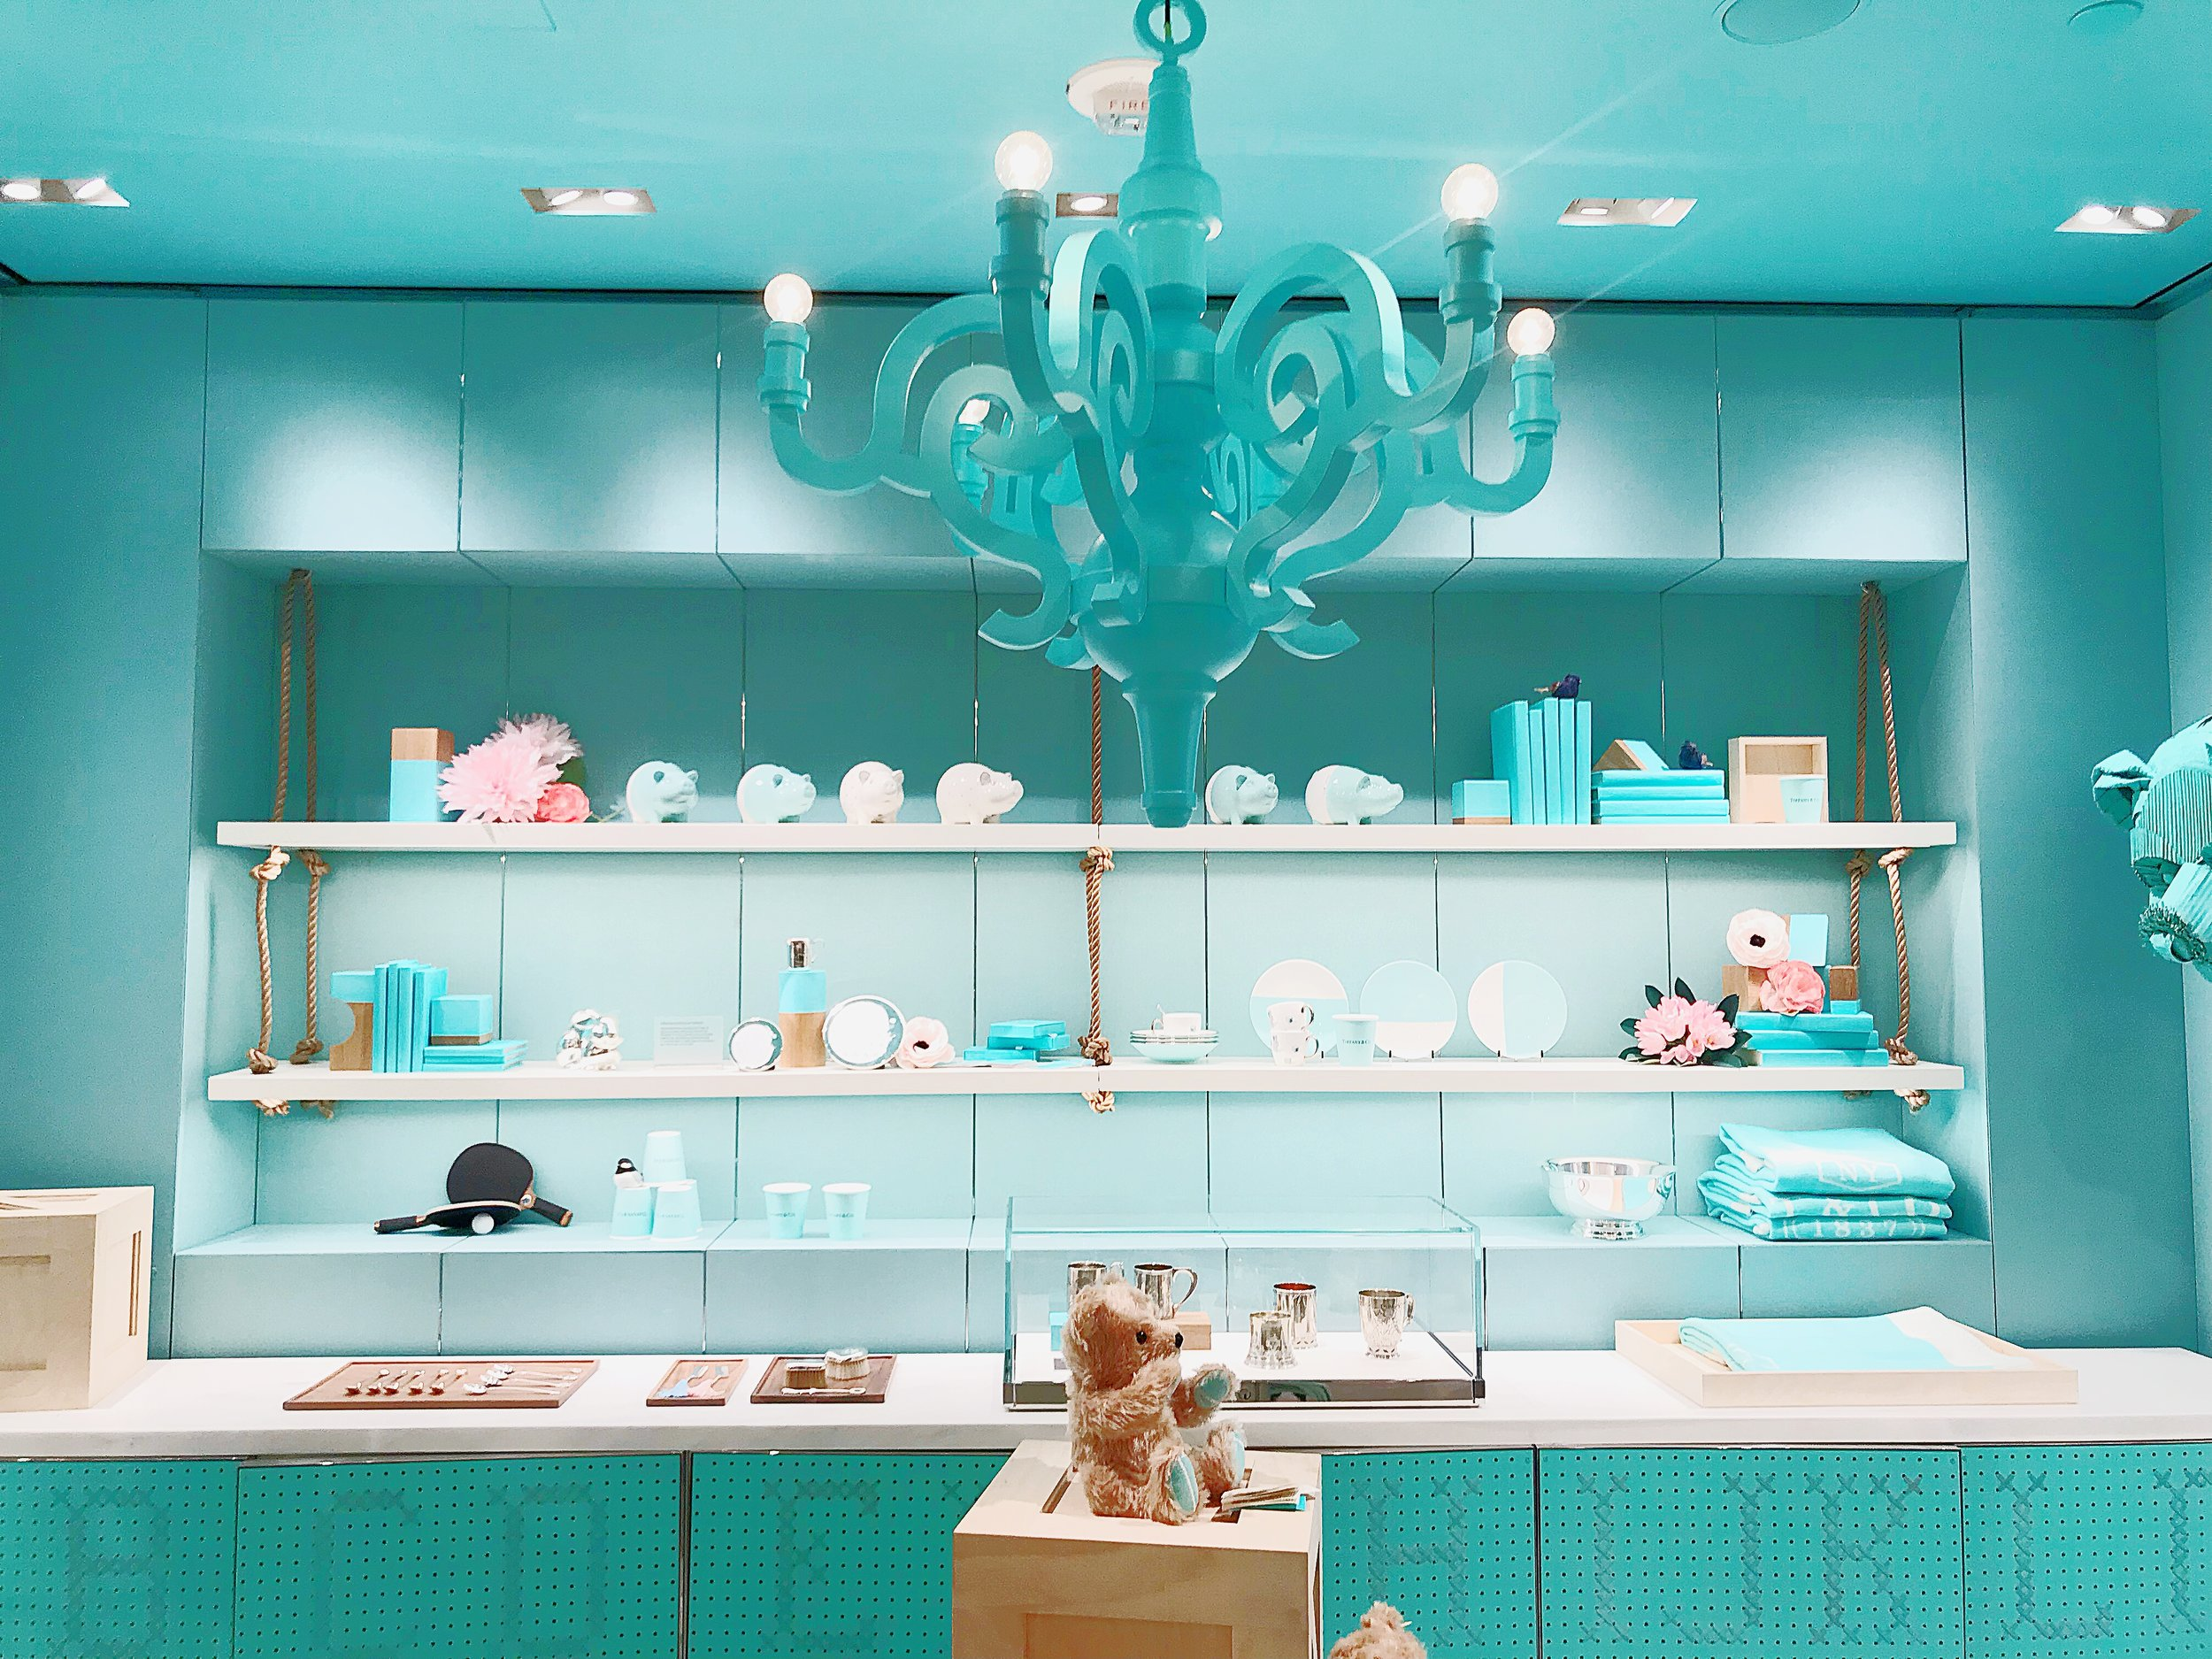 The Home Collection at Tiffany's - 4th Fllor